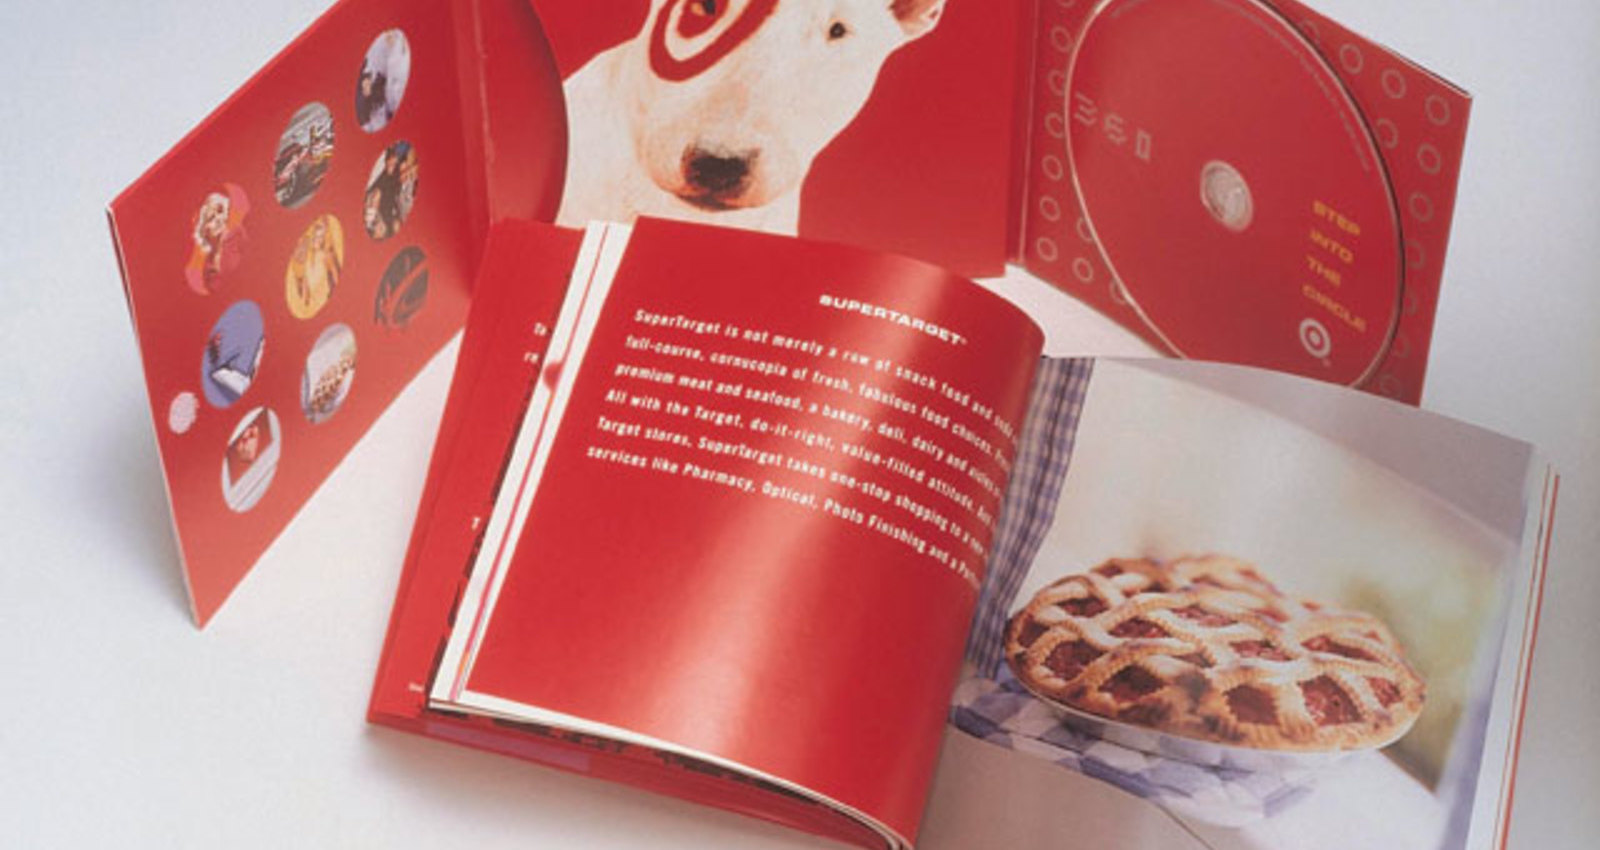 Target Brand Mrktg. Book and DVD